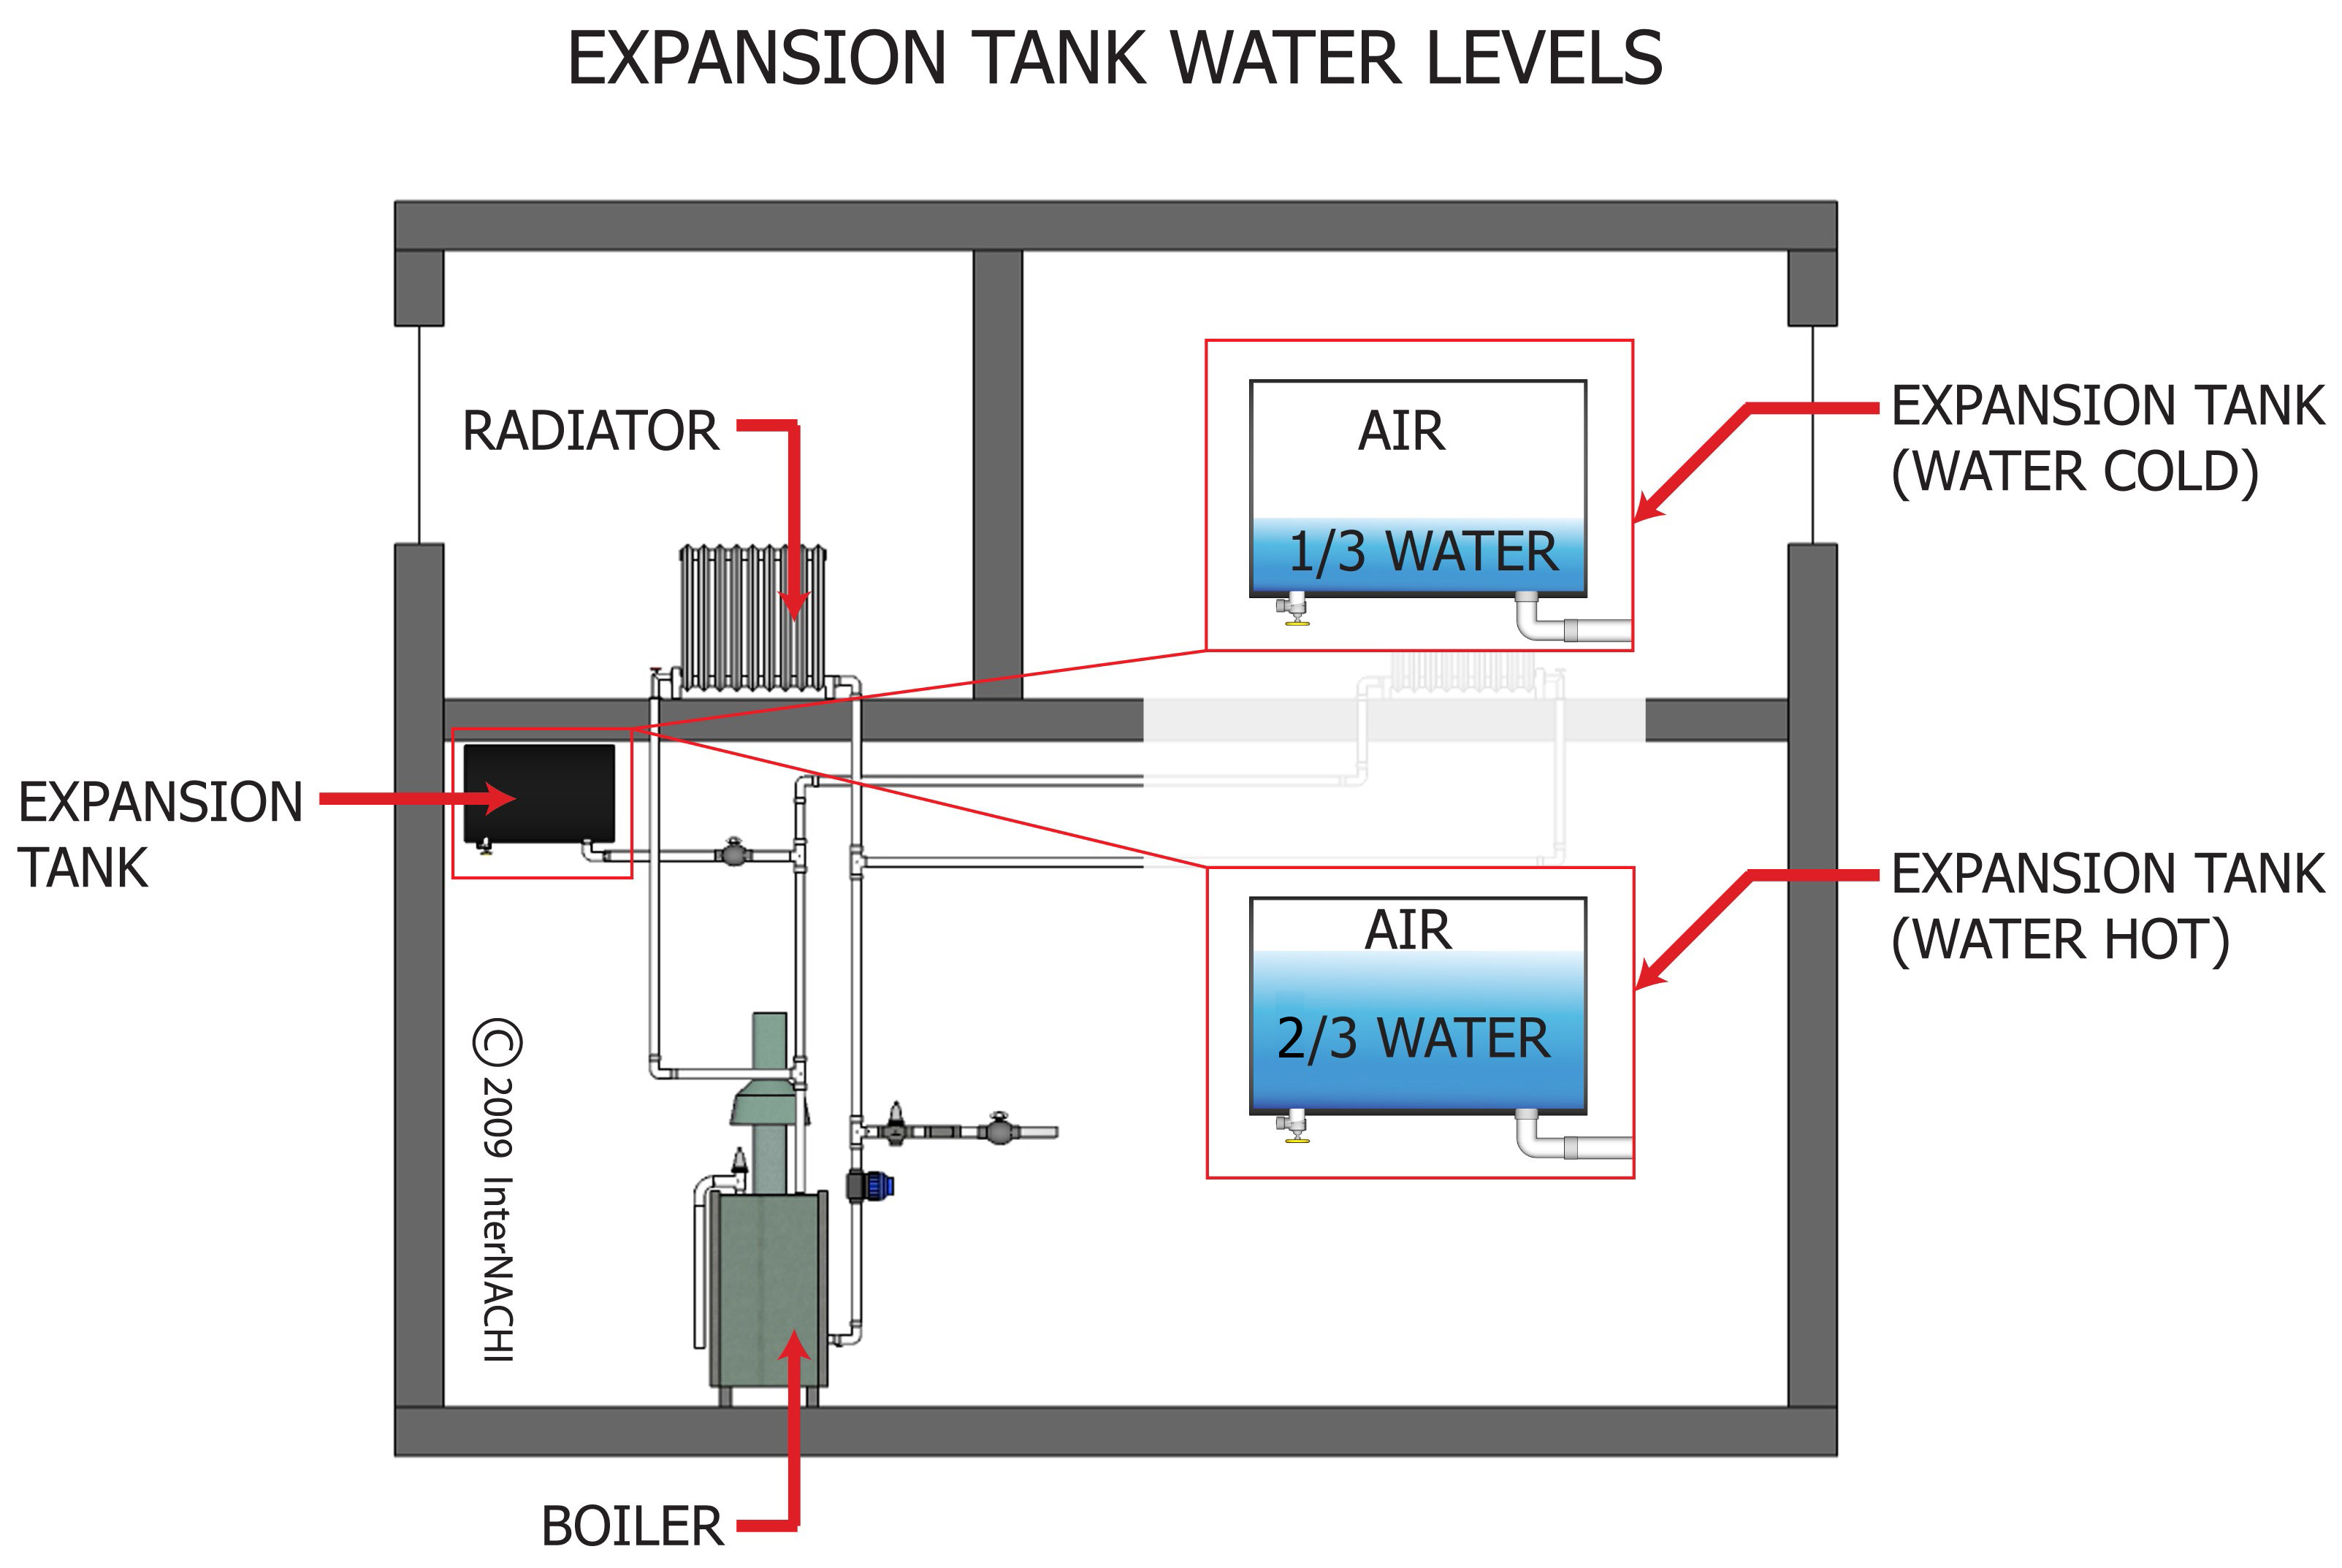 Expansion tank water levels.